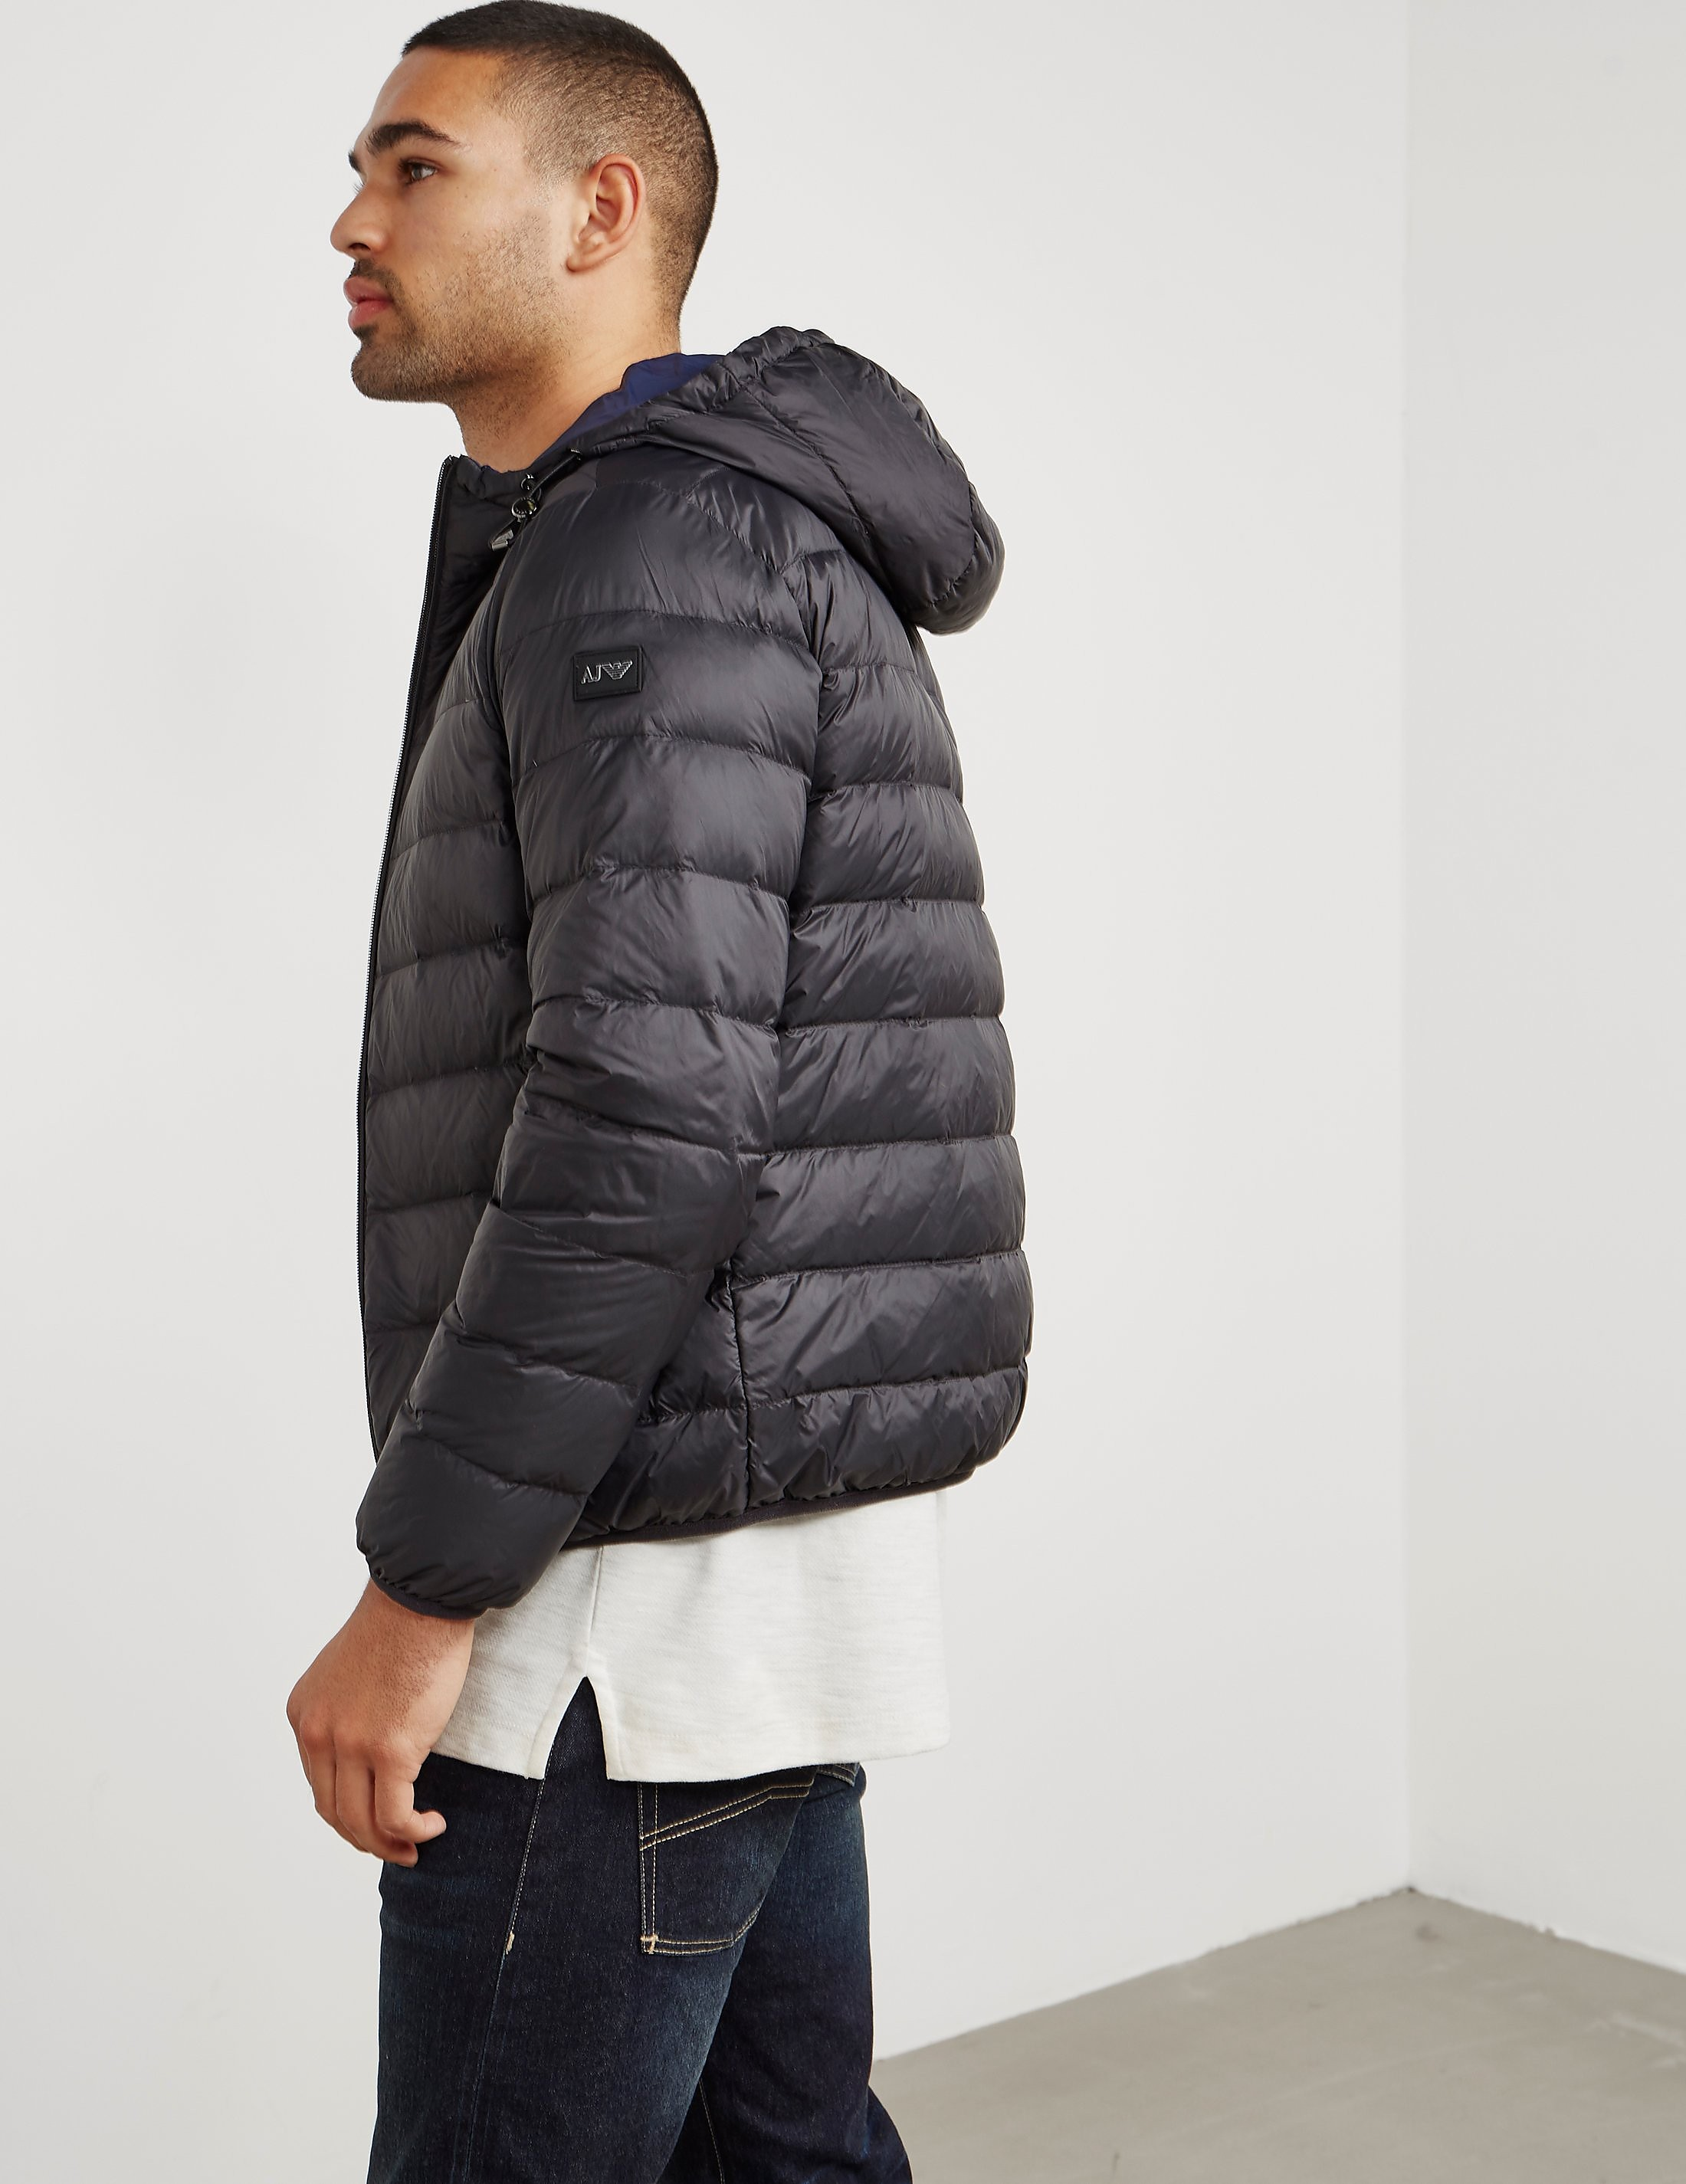 Armani Jeans Bubble Jacket